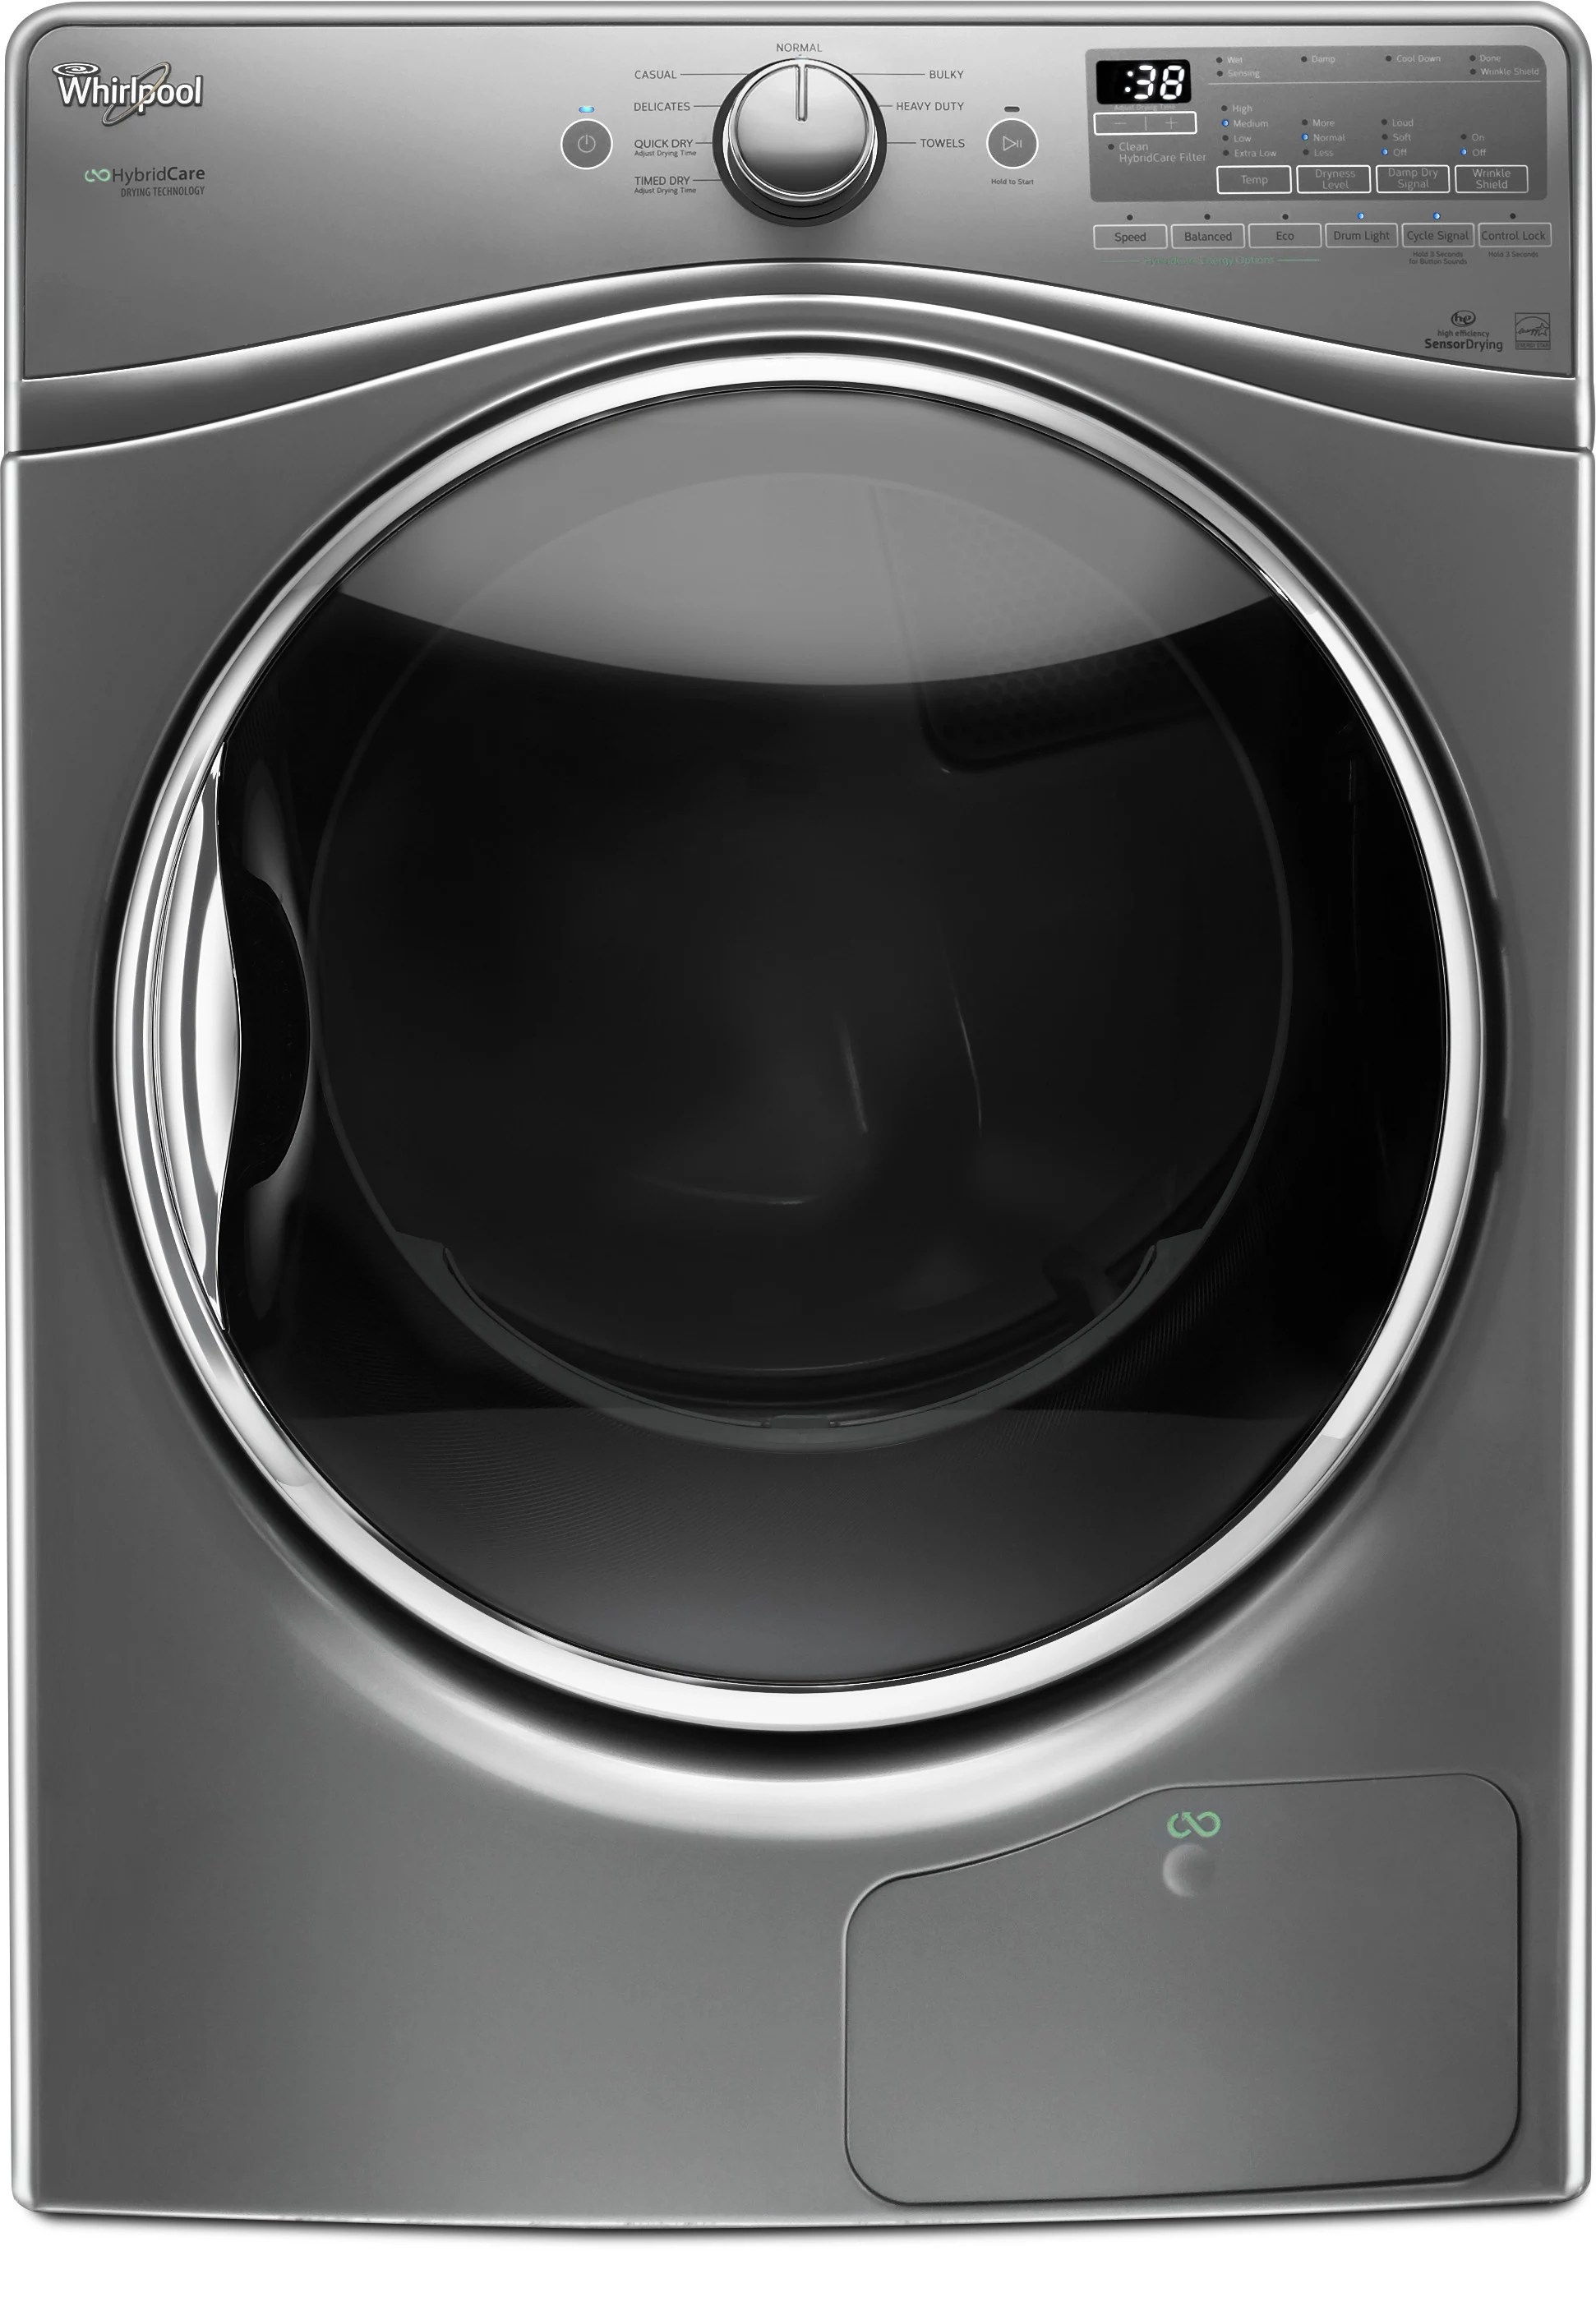 Water Closet Dimensions Whirlpool Wfw9290fc 27 Inch 4.2 Cu. Ft. Front Load Washer